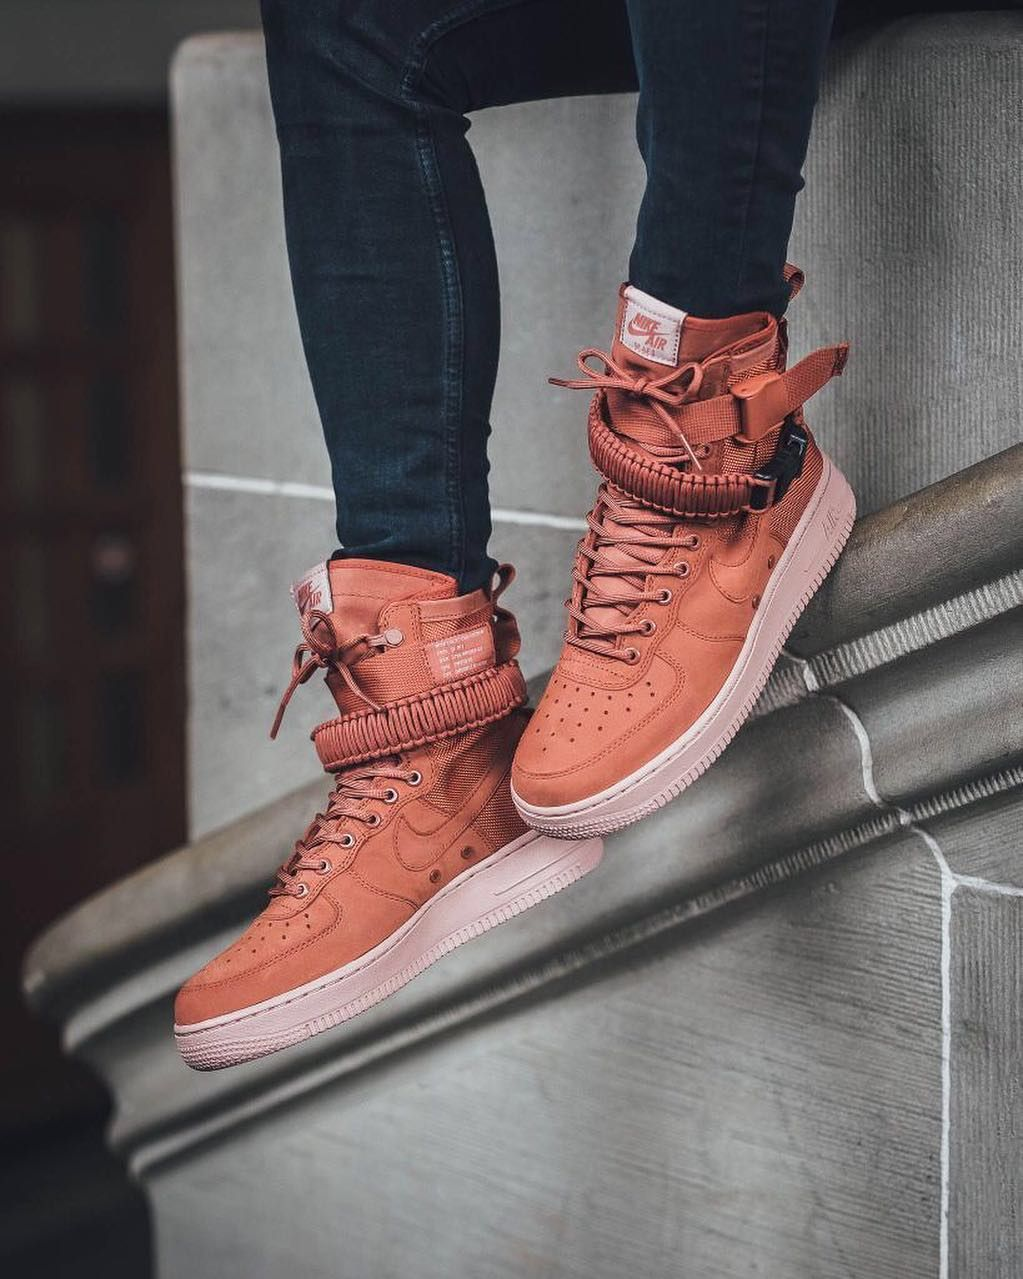 prossimamente: nike air force speciale campo 1 cachi rush coral